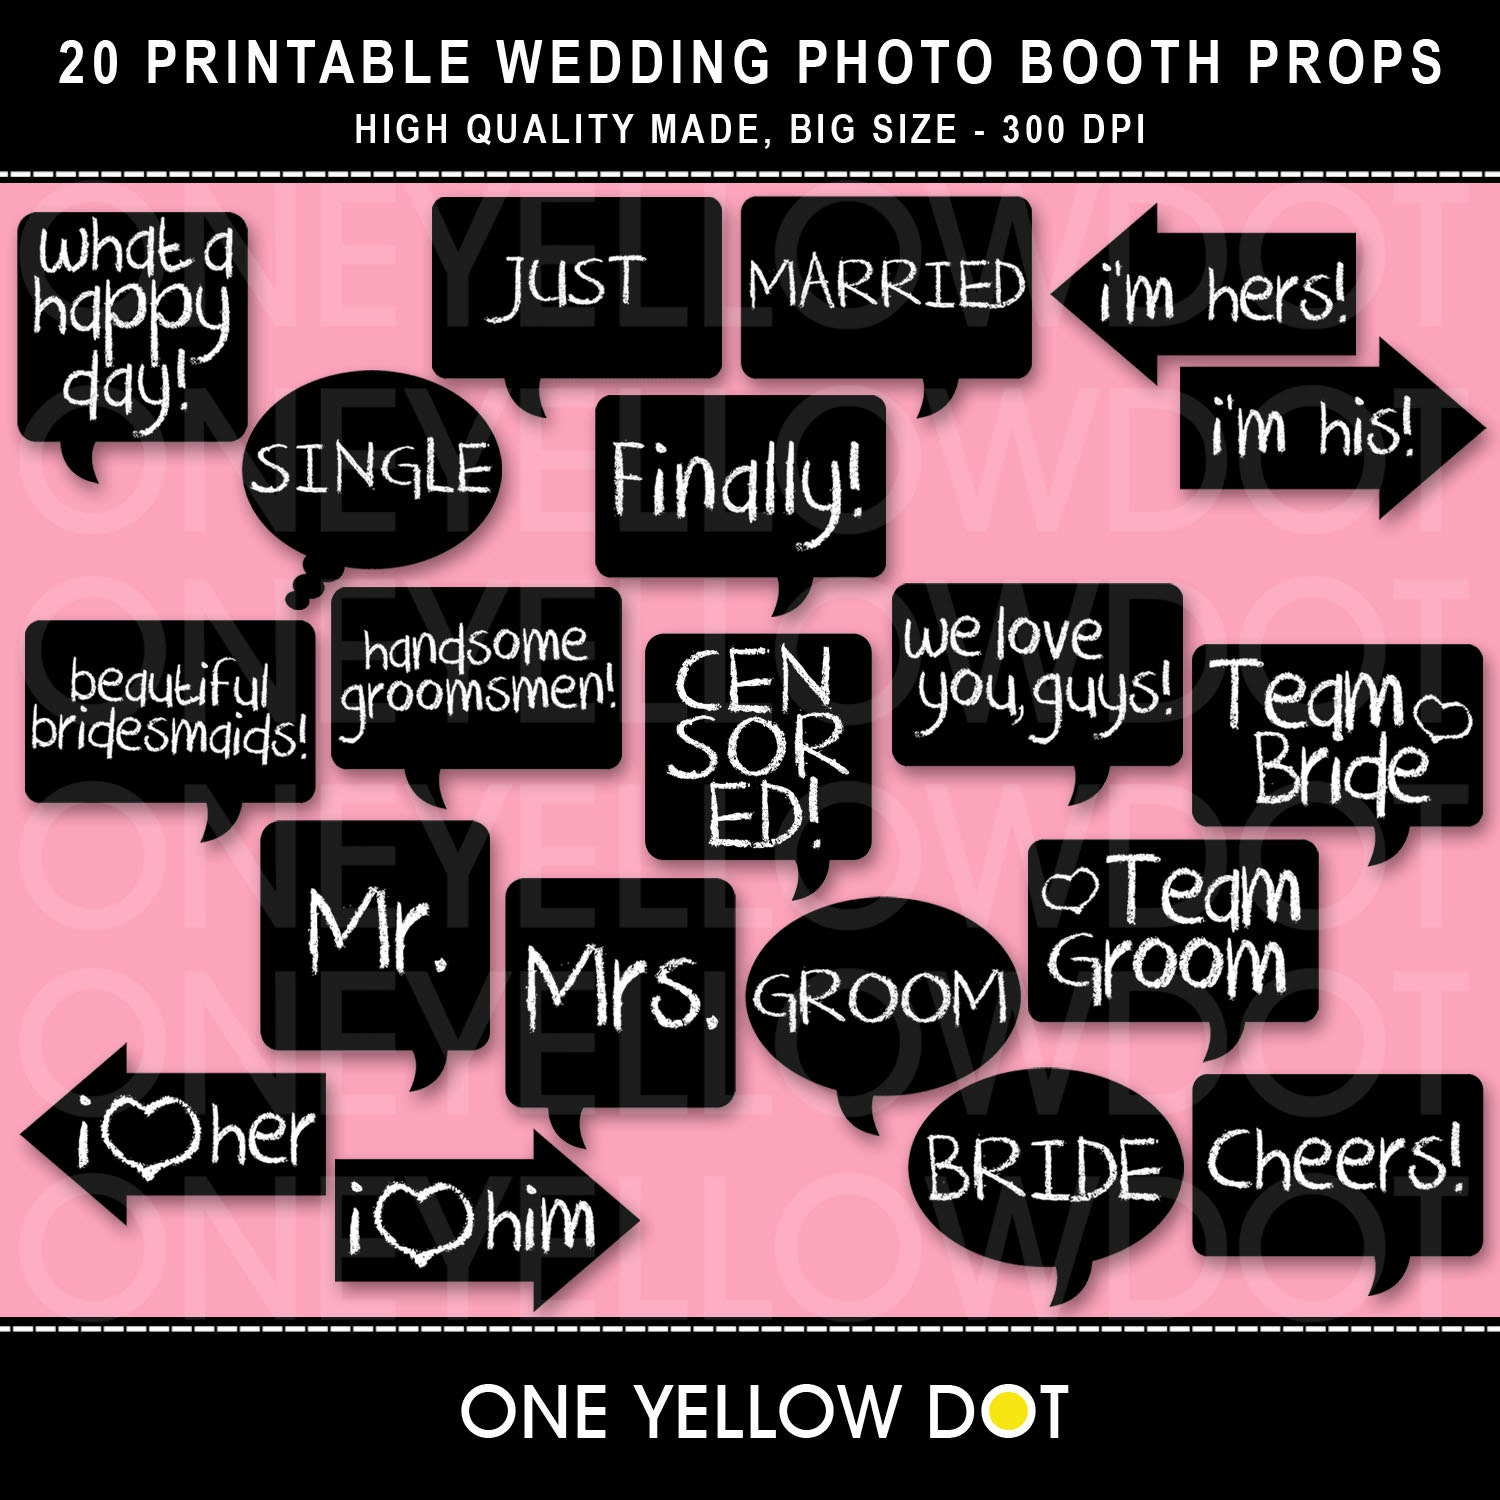 INSTANT DOWNLOAD Wedding Photo Booth Props Printable PDF